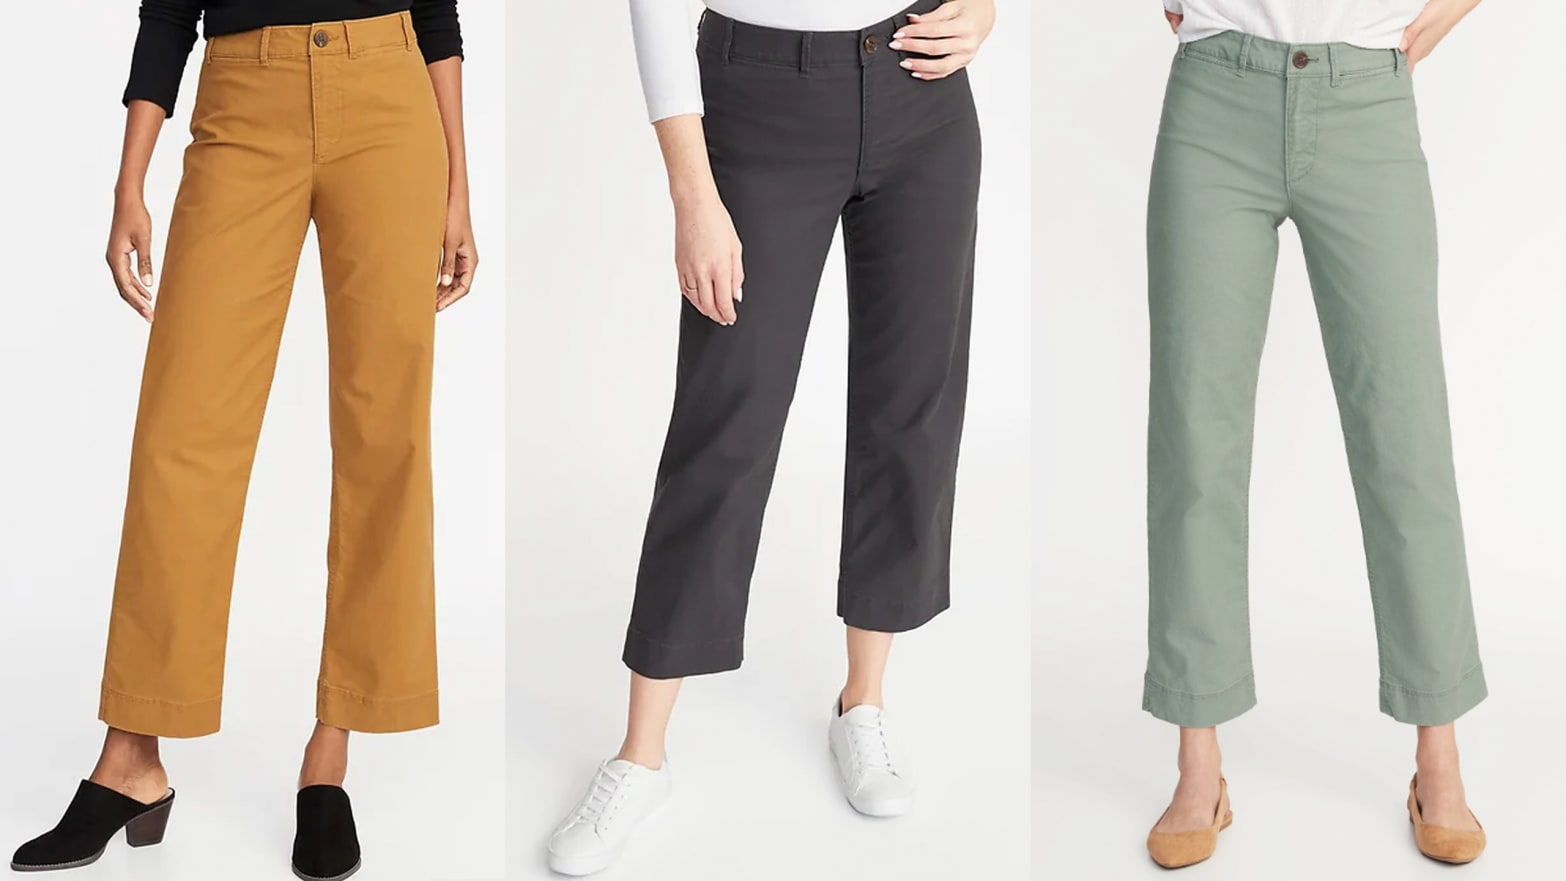 f905fa12d7d2 The Mid-Rise Wide-Leg Utility Chinos From Old Navy Are a Petite Person's  Dream Pants